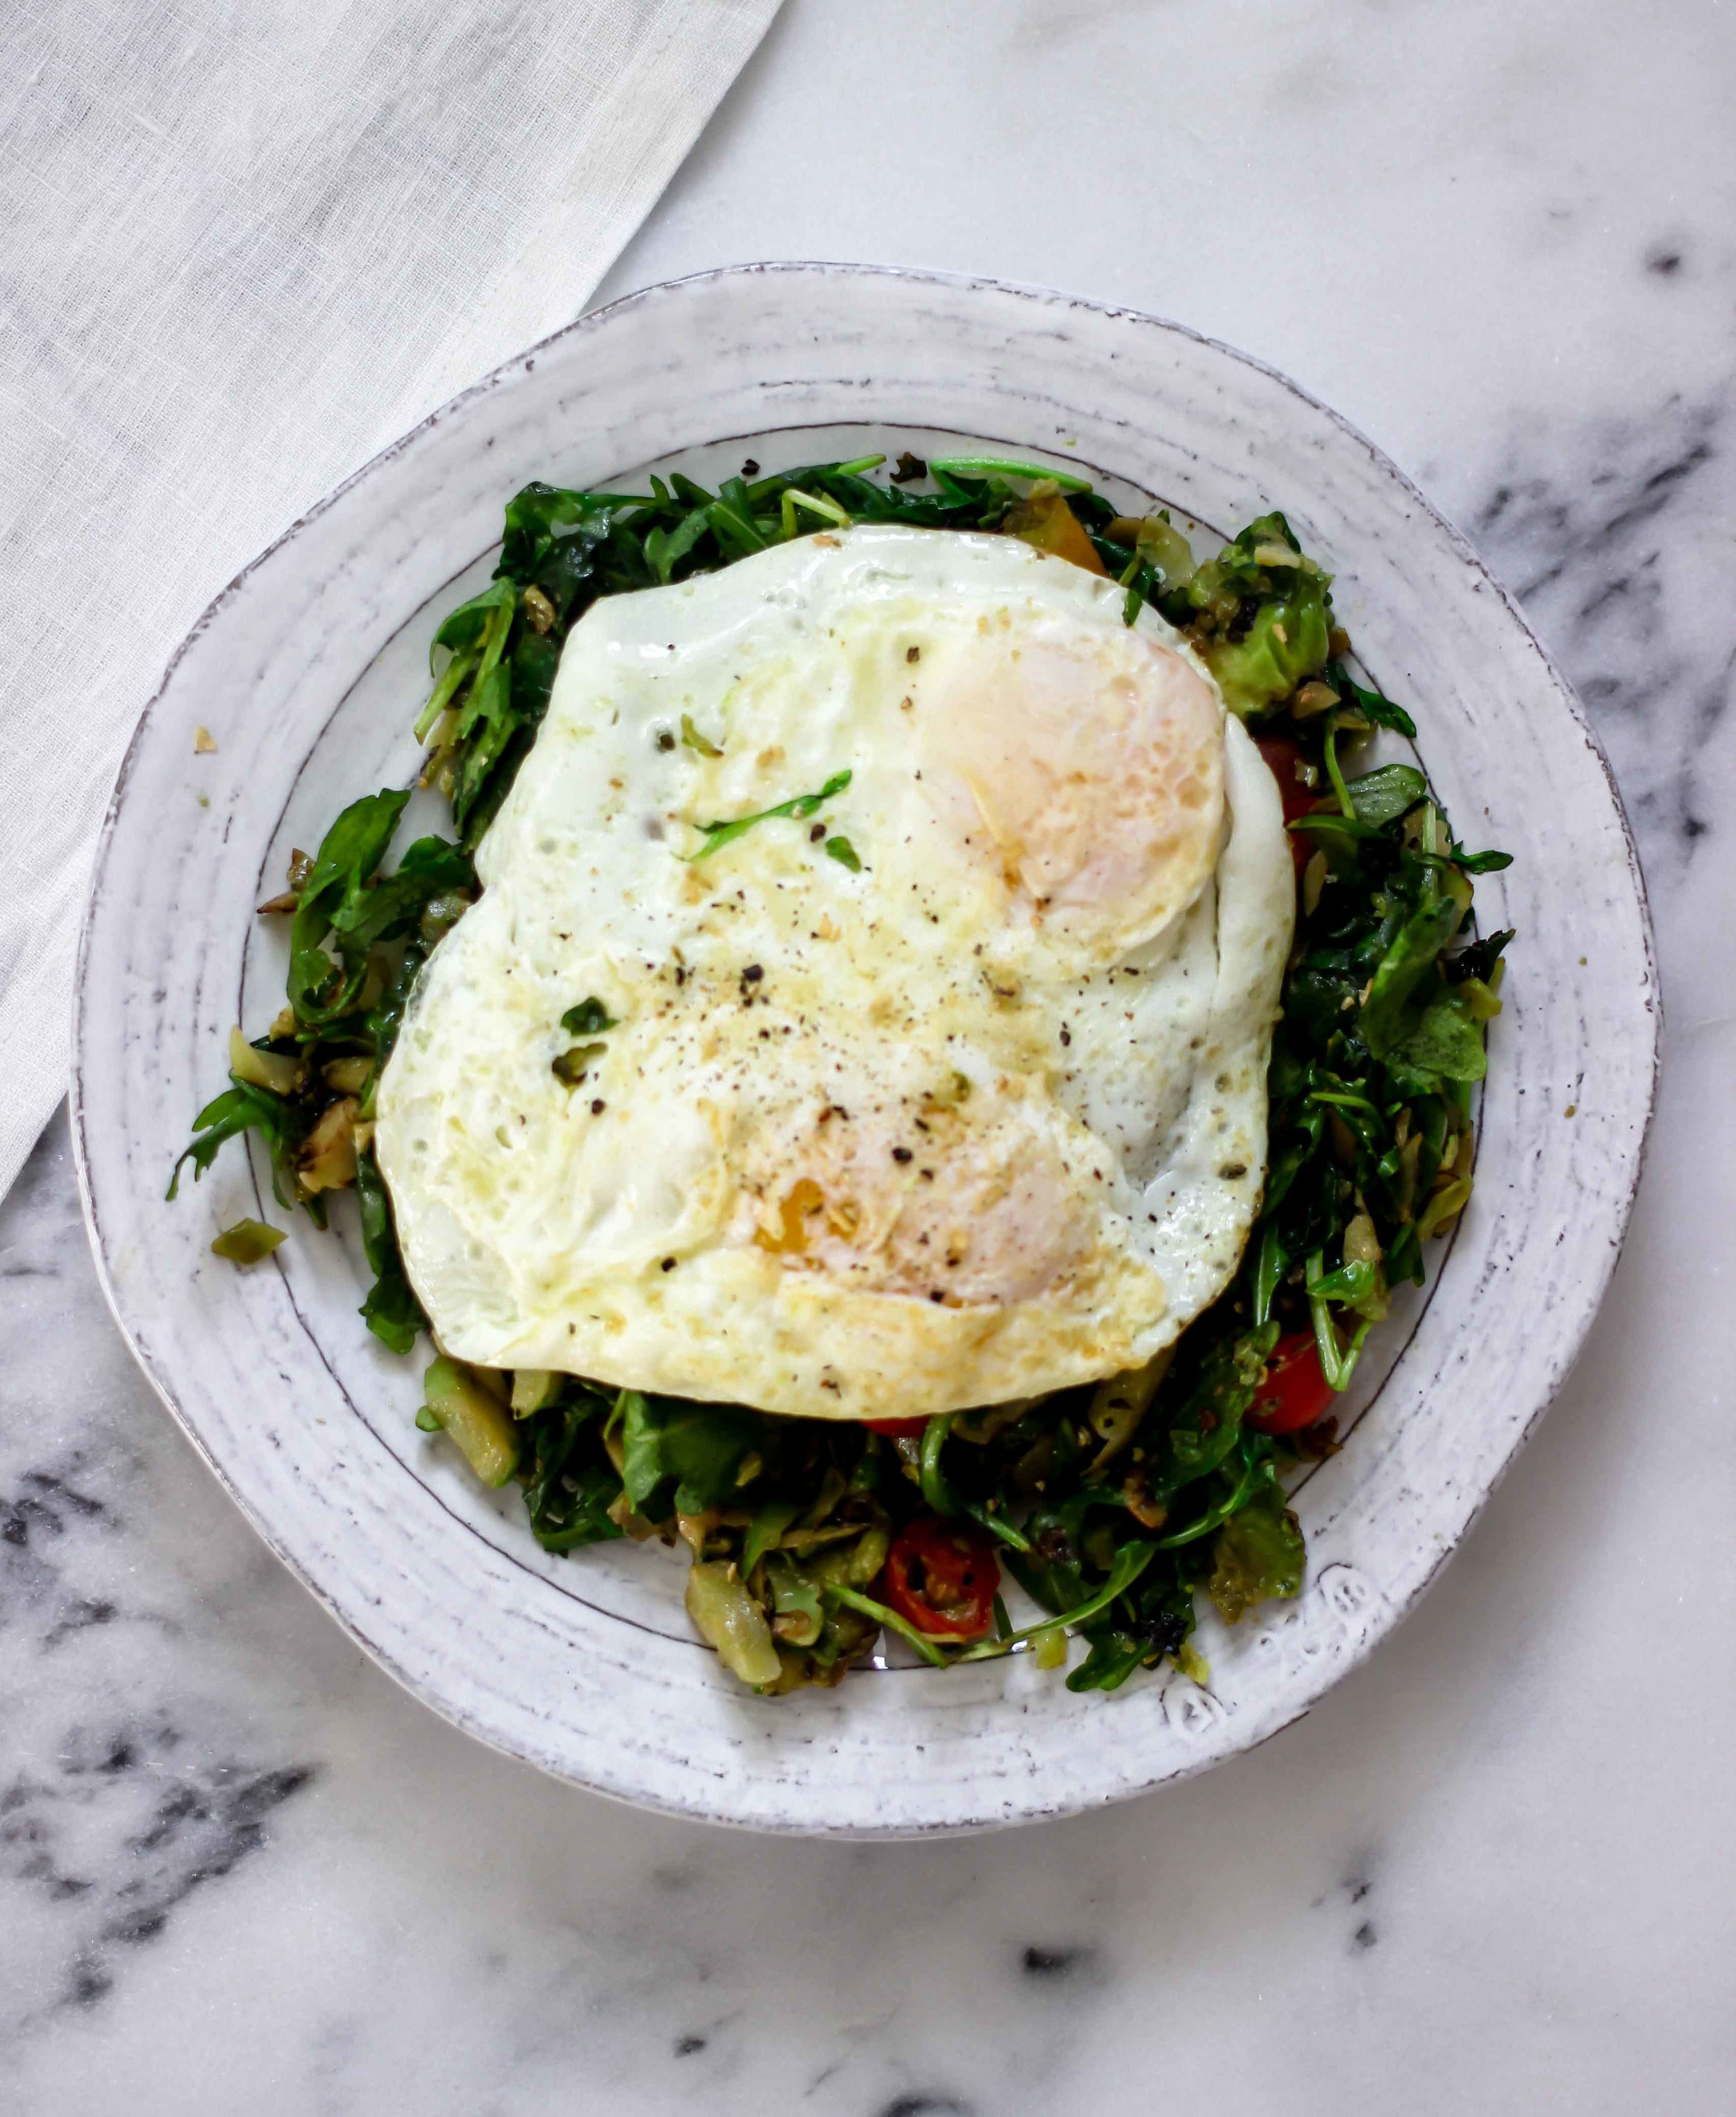 warm brussel sprouts and arugula winter salad